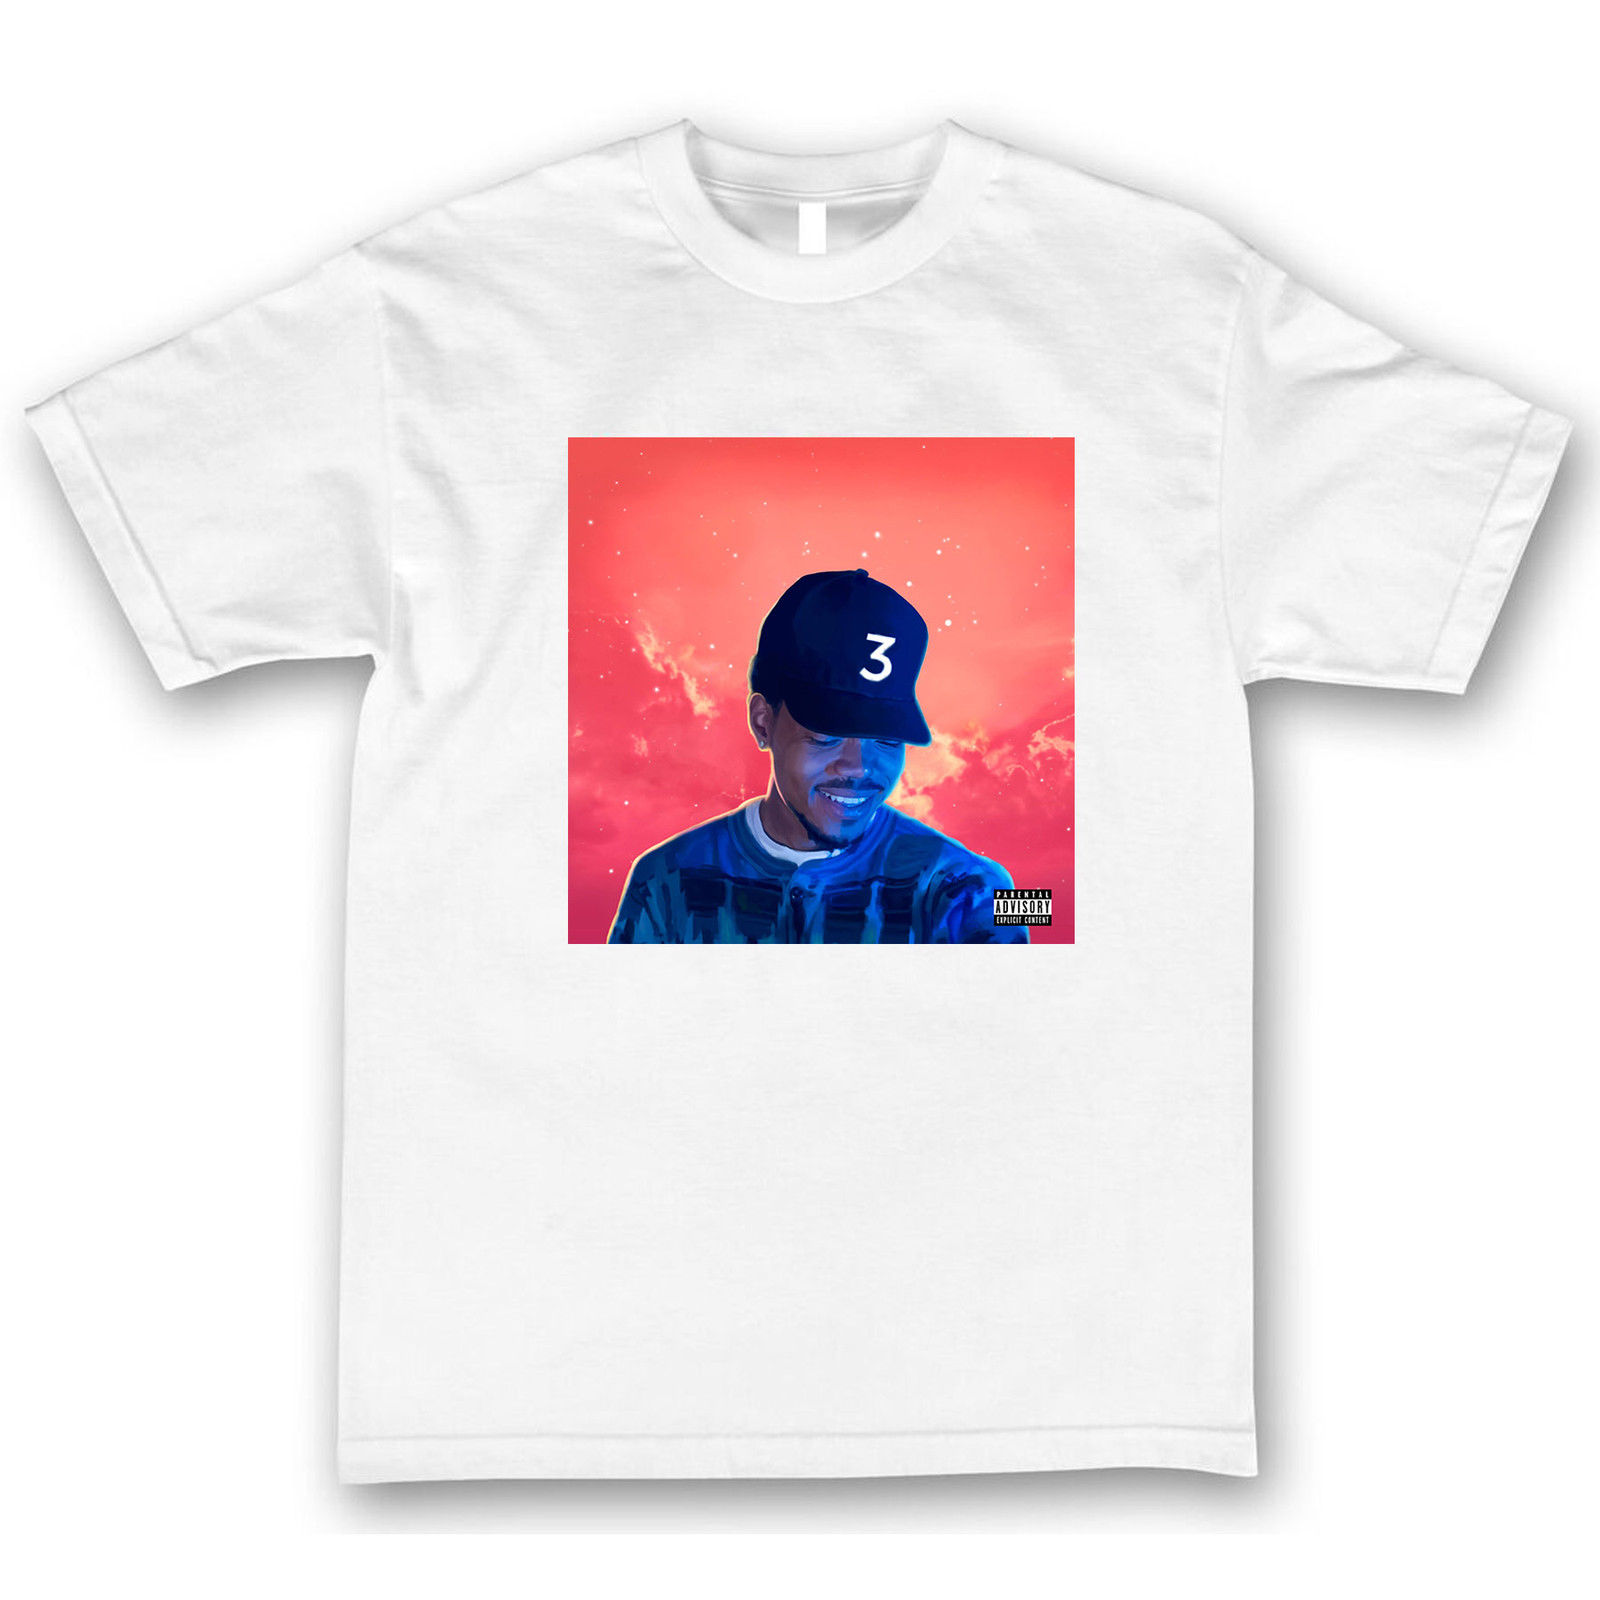 The coloring book chance the rapper tour - Chance The Rapper T Shirt Coloring Book Tour 3 Angels New Shirts Homme Novelty Tshirt Men Short Sleeve T Shirt Free Shipping